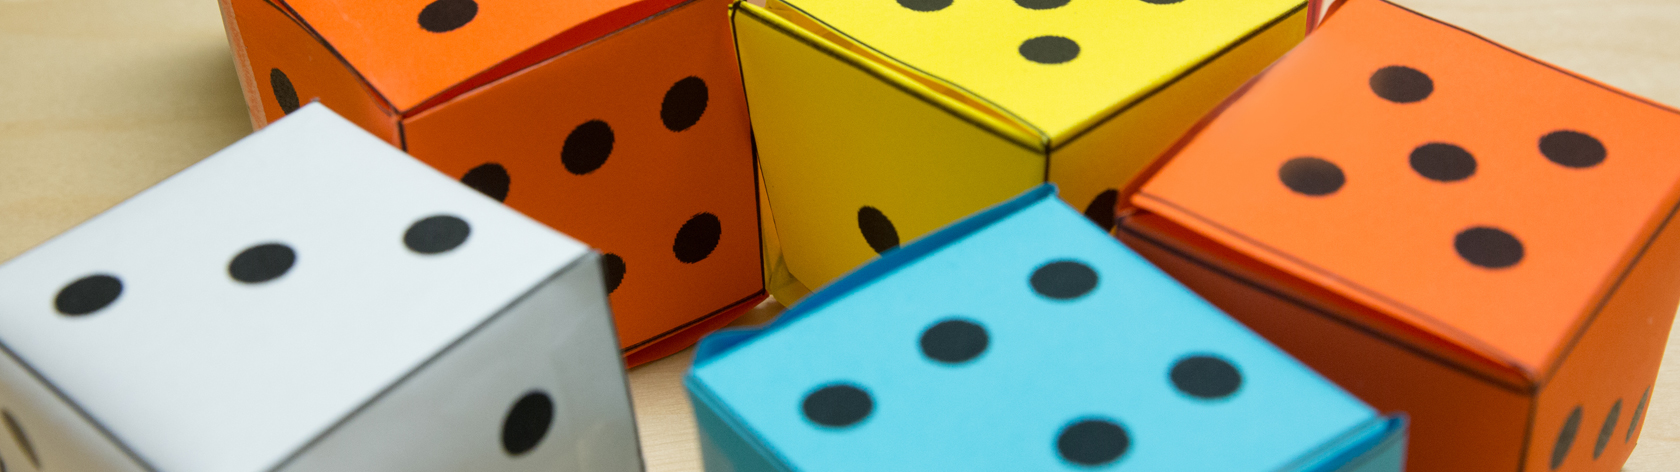 Grouping of big paper dice in different colors